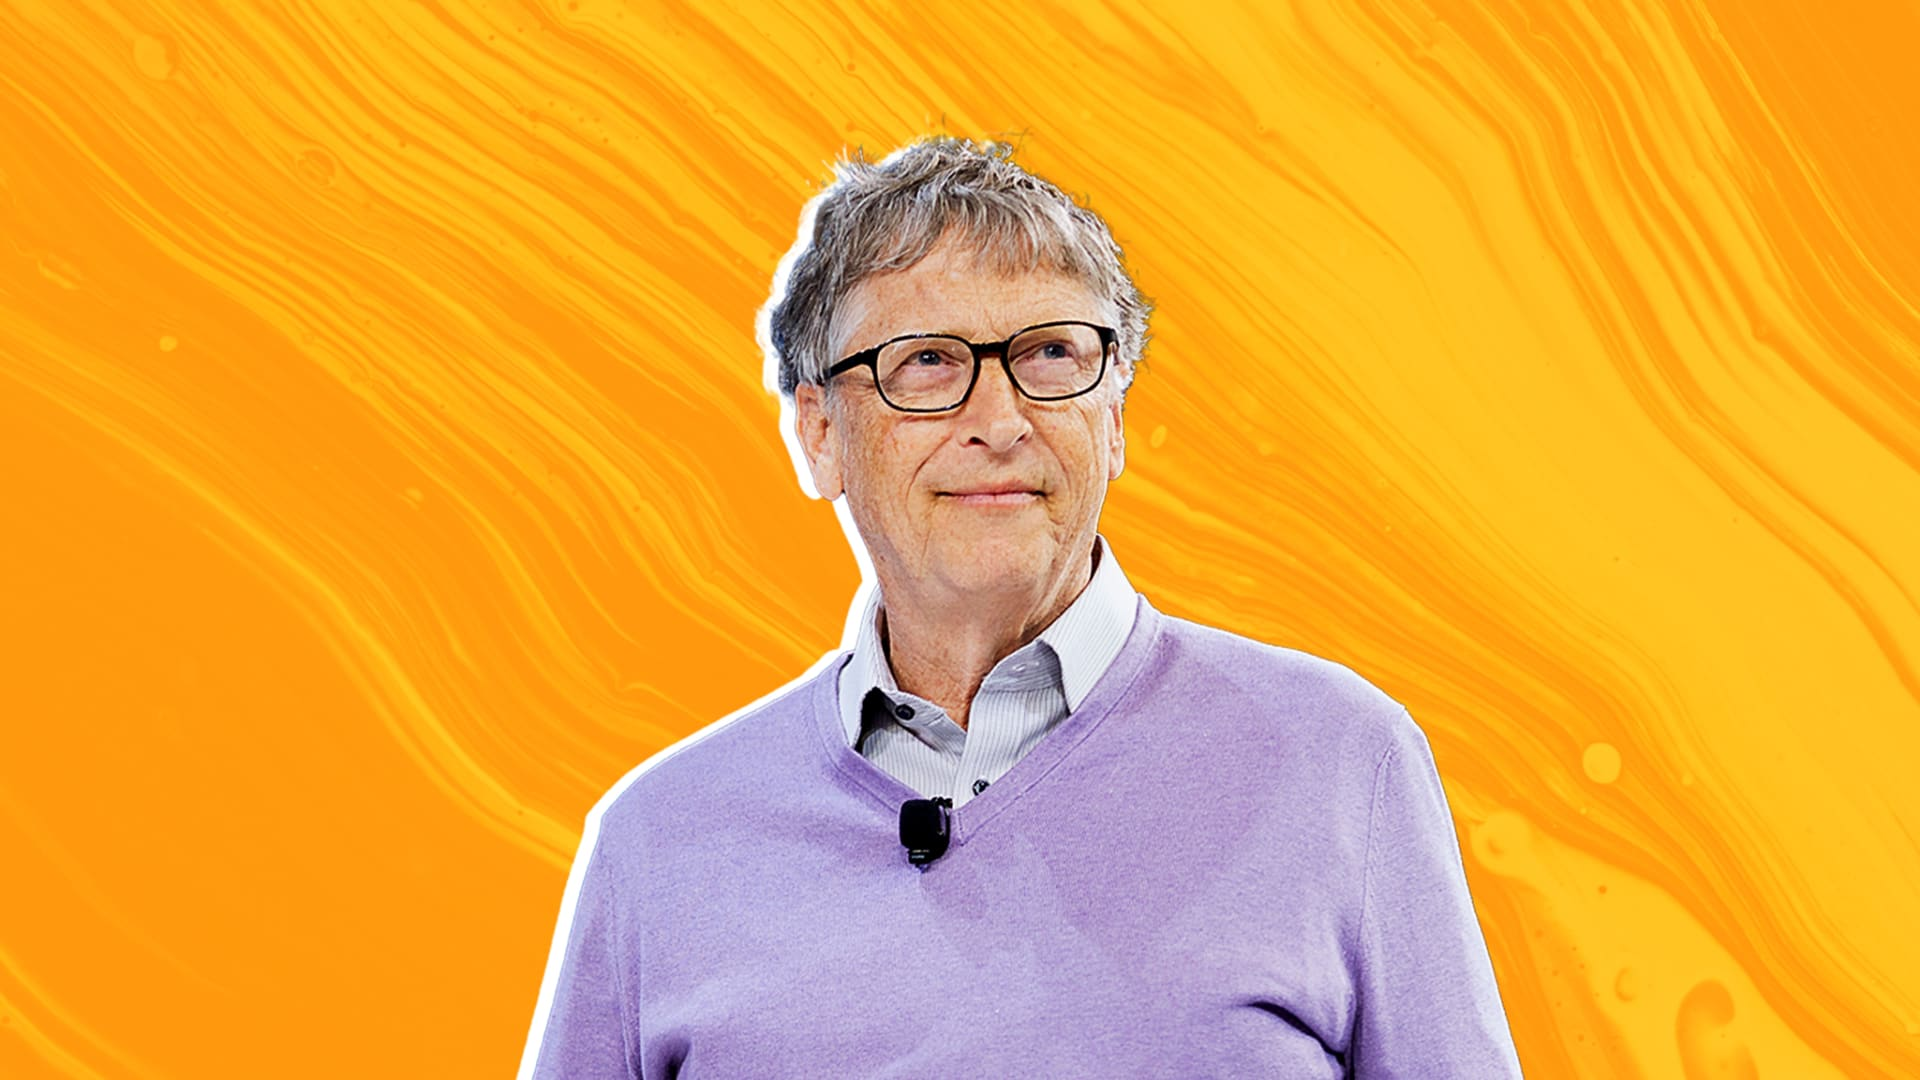 25 Years Ago, Bill Gates Predicted Netflix, iPhones, and Facebook. Here's What He Got Wrong